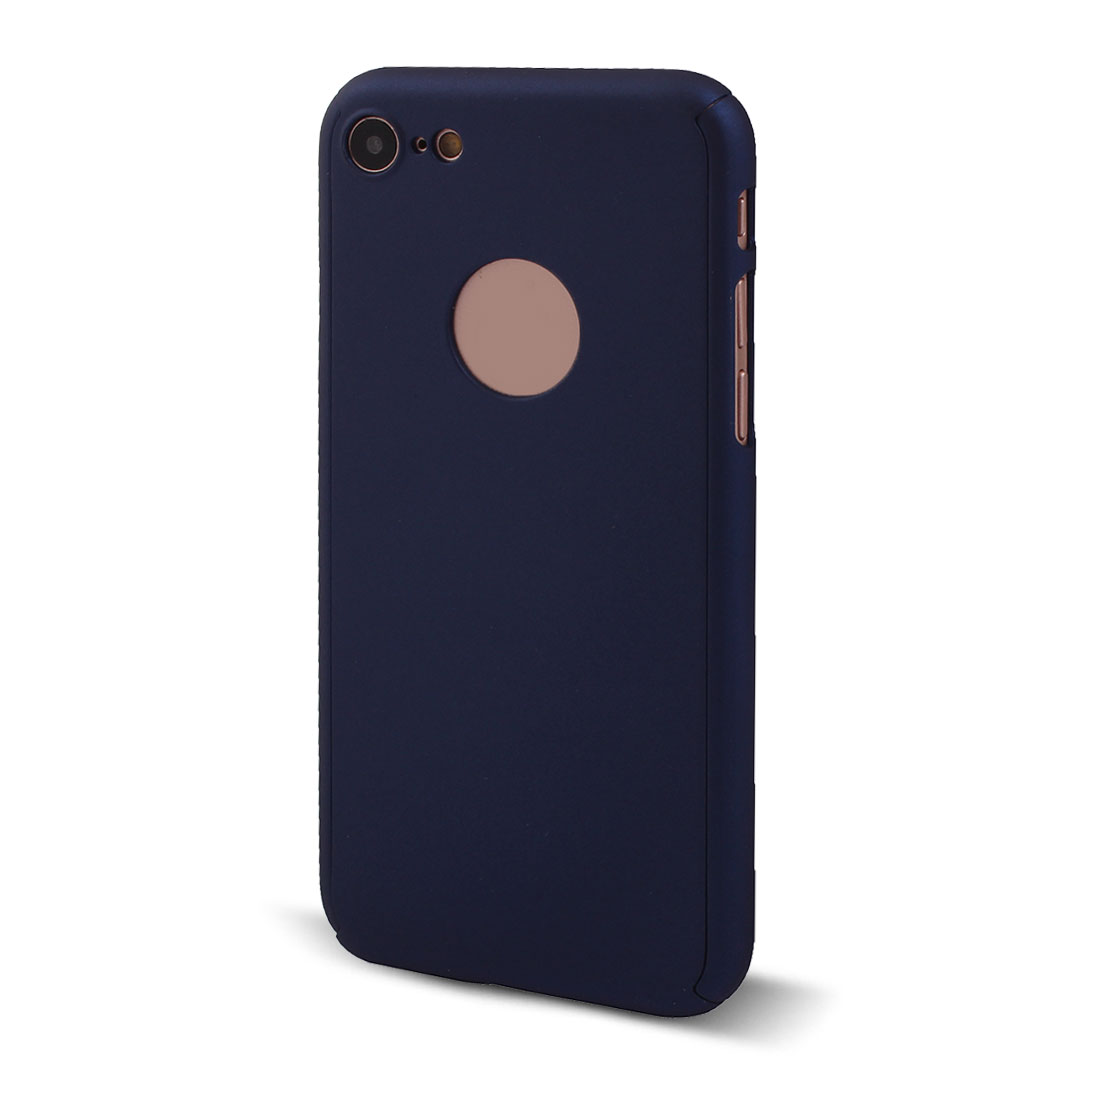 Polycarbonate 360 Degree Full Body Skin Phone Case Navy Blue for iPhone 7